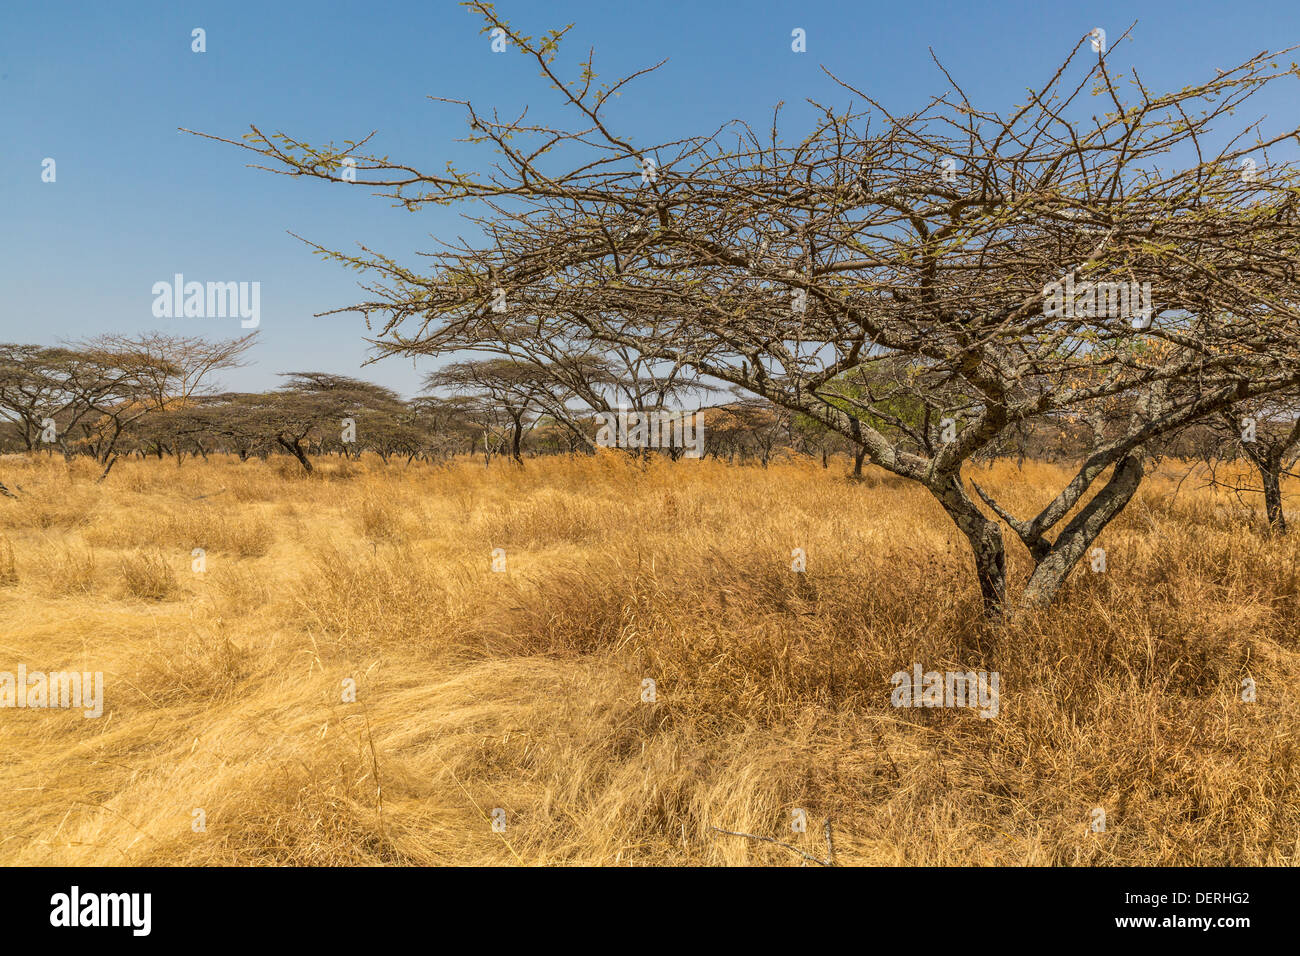 Acacia trees in the dry savannah grasslands in Abjatta-shalla national park, Ethiopia - Stock Image